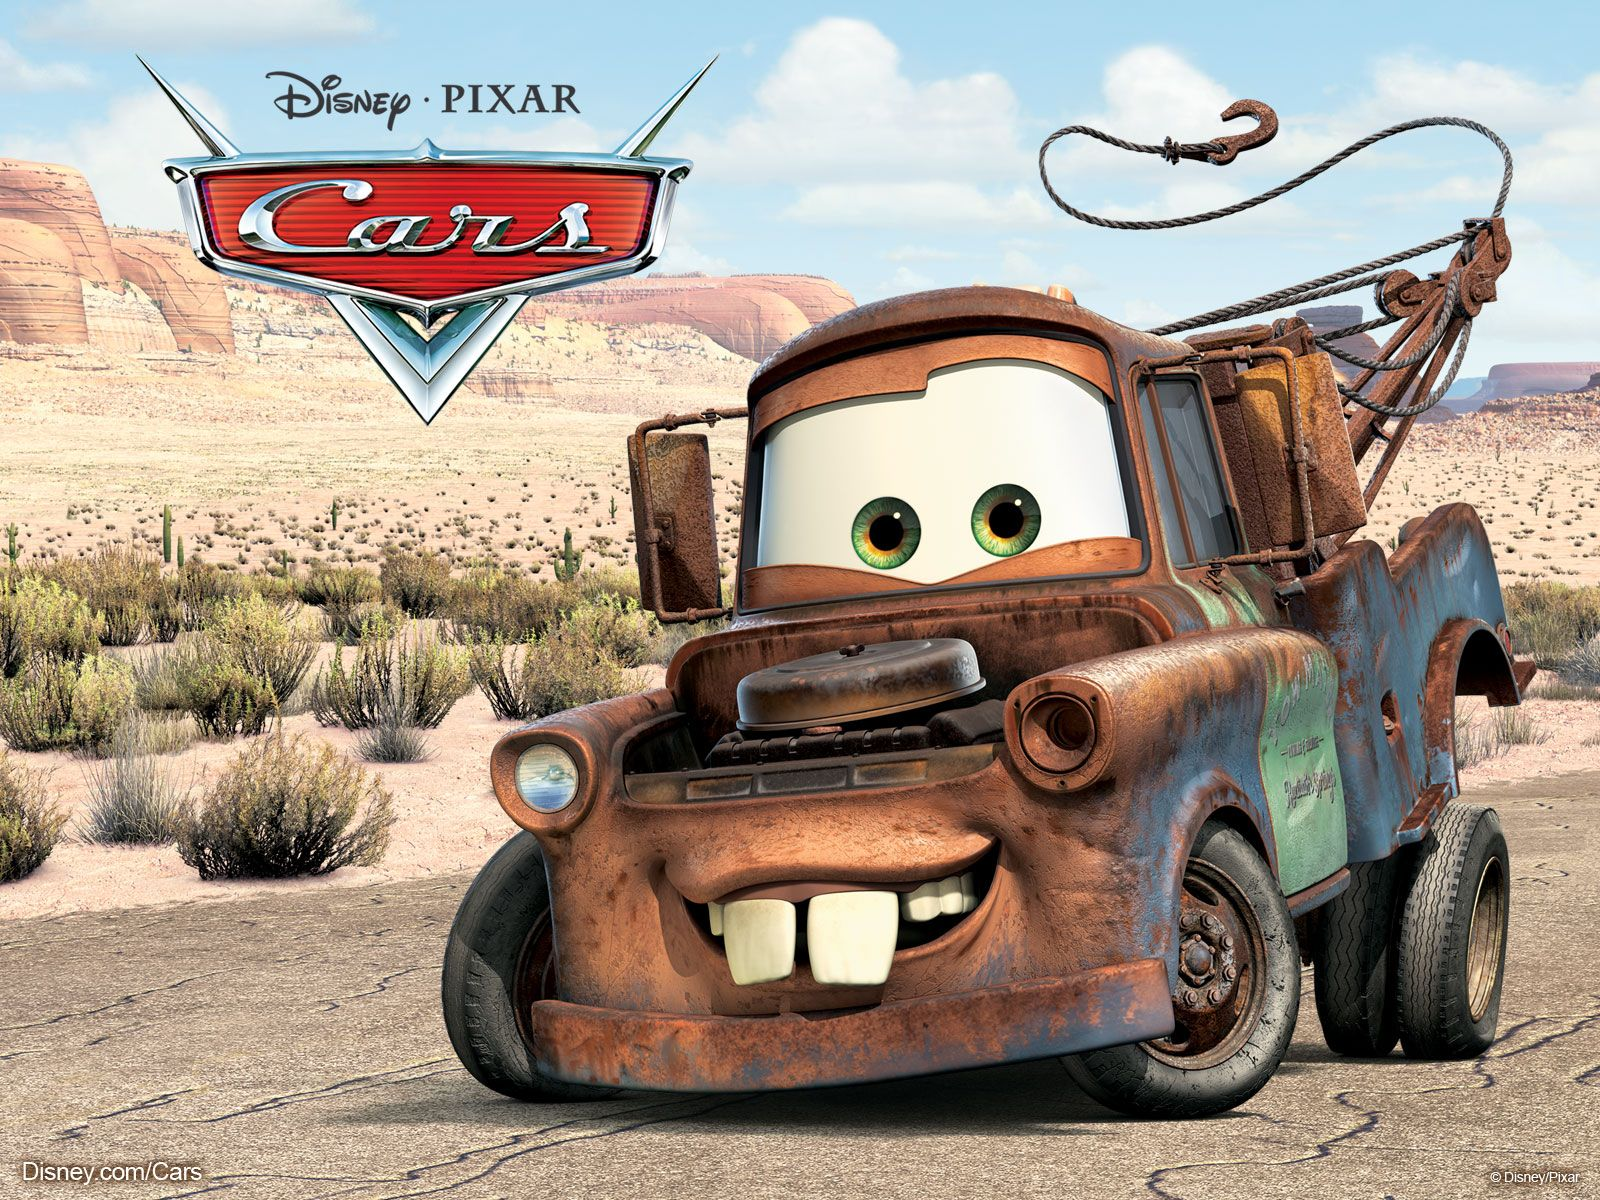 Cars movie mater the tow truck from pixar s cars movie wallpaper click